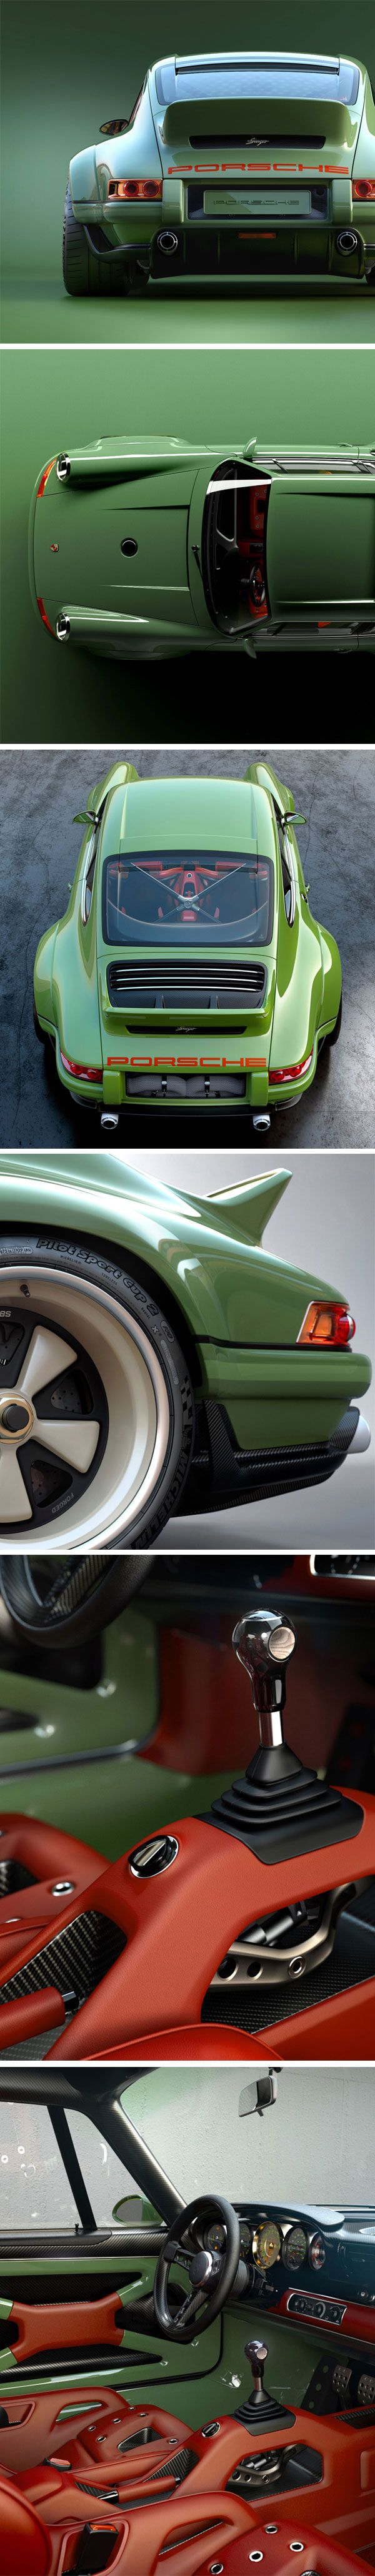 A Custom 1990 Porsche 964, The First In A Limited Edition Series  Travel In Style | #MichaelLouis - www.MichaelLouis.com